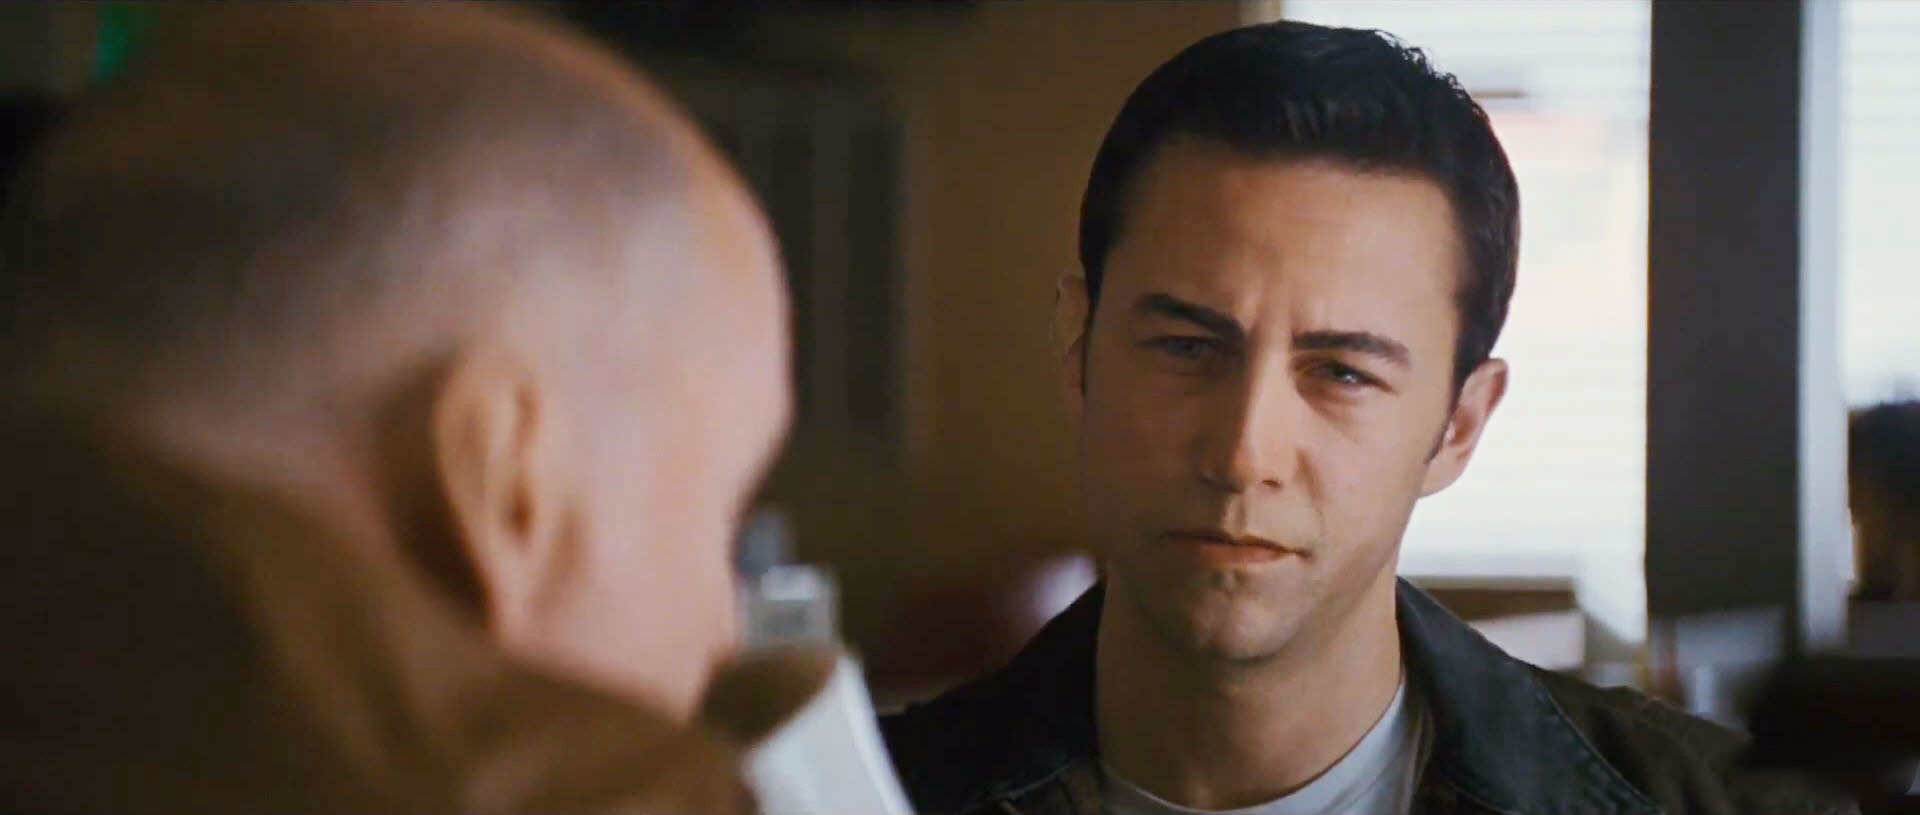 looper-diner-scene-joseph-gordon-levitt-talks-to-older-self-willisMC